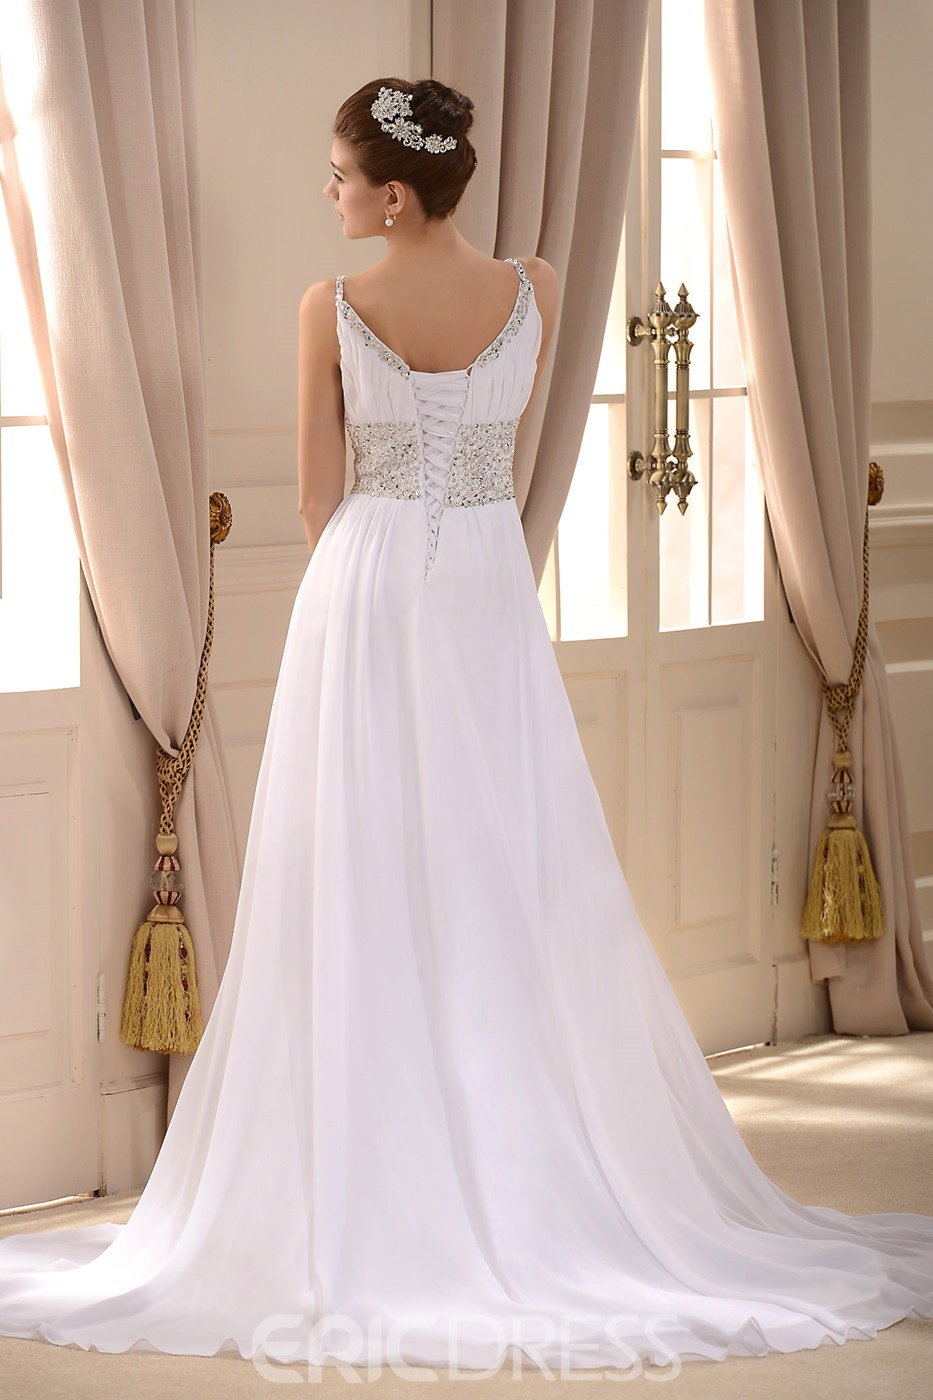 Empire Spaghetti Straps Sleeveless Beaded Court Train Wedding Dress